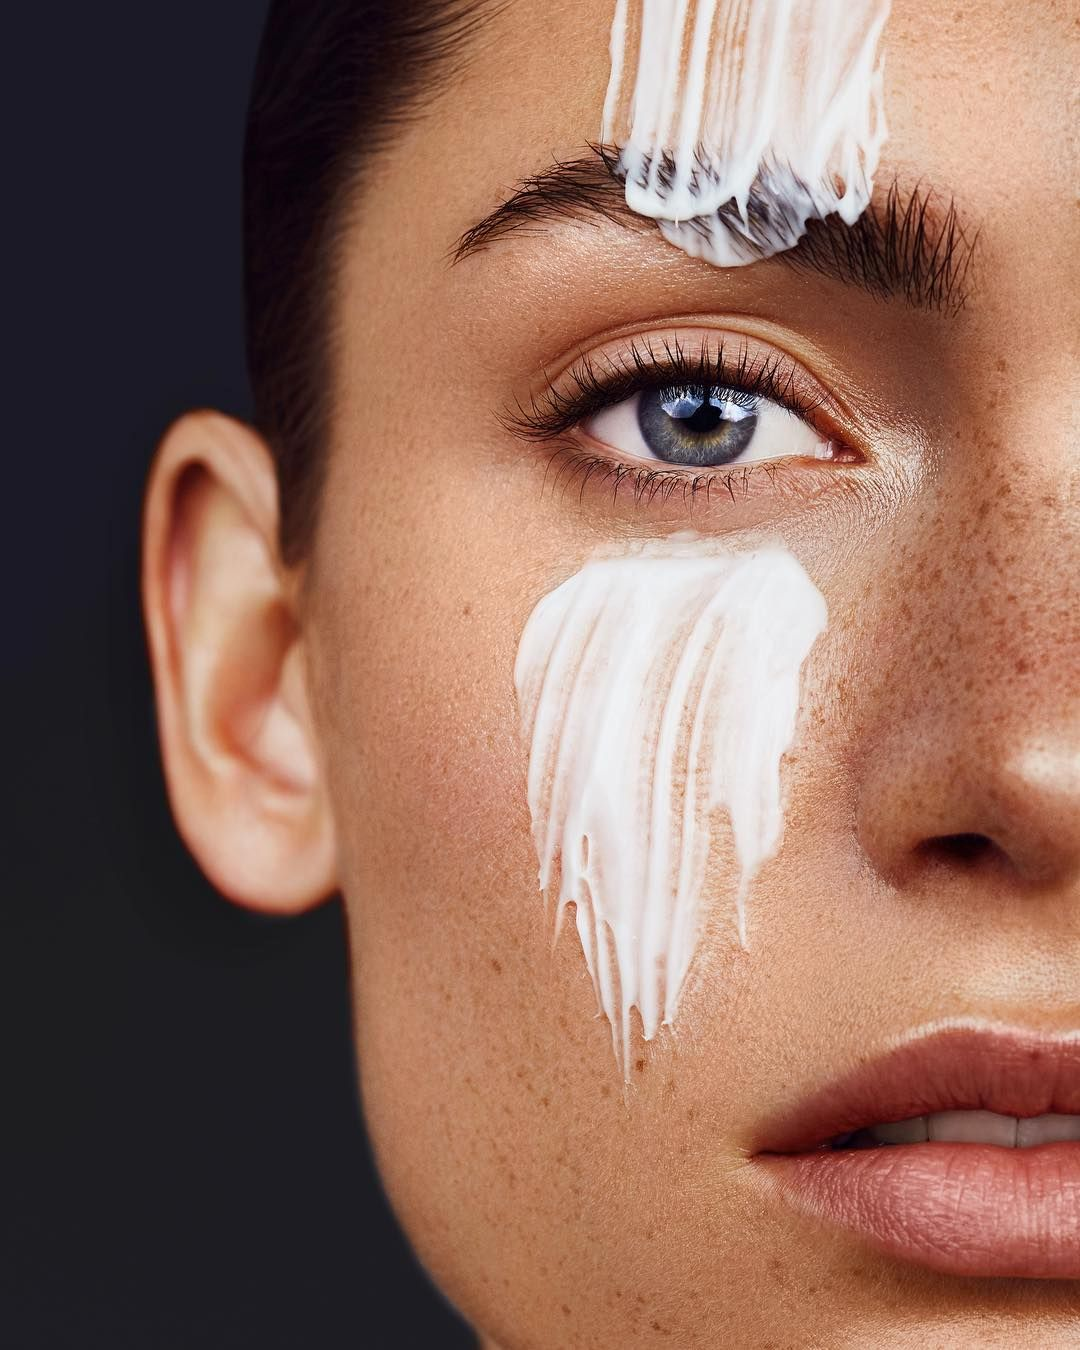 Pin By Jessica On S K I N Beauty Routine Checklist Skin Care Pictures Skin Care